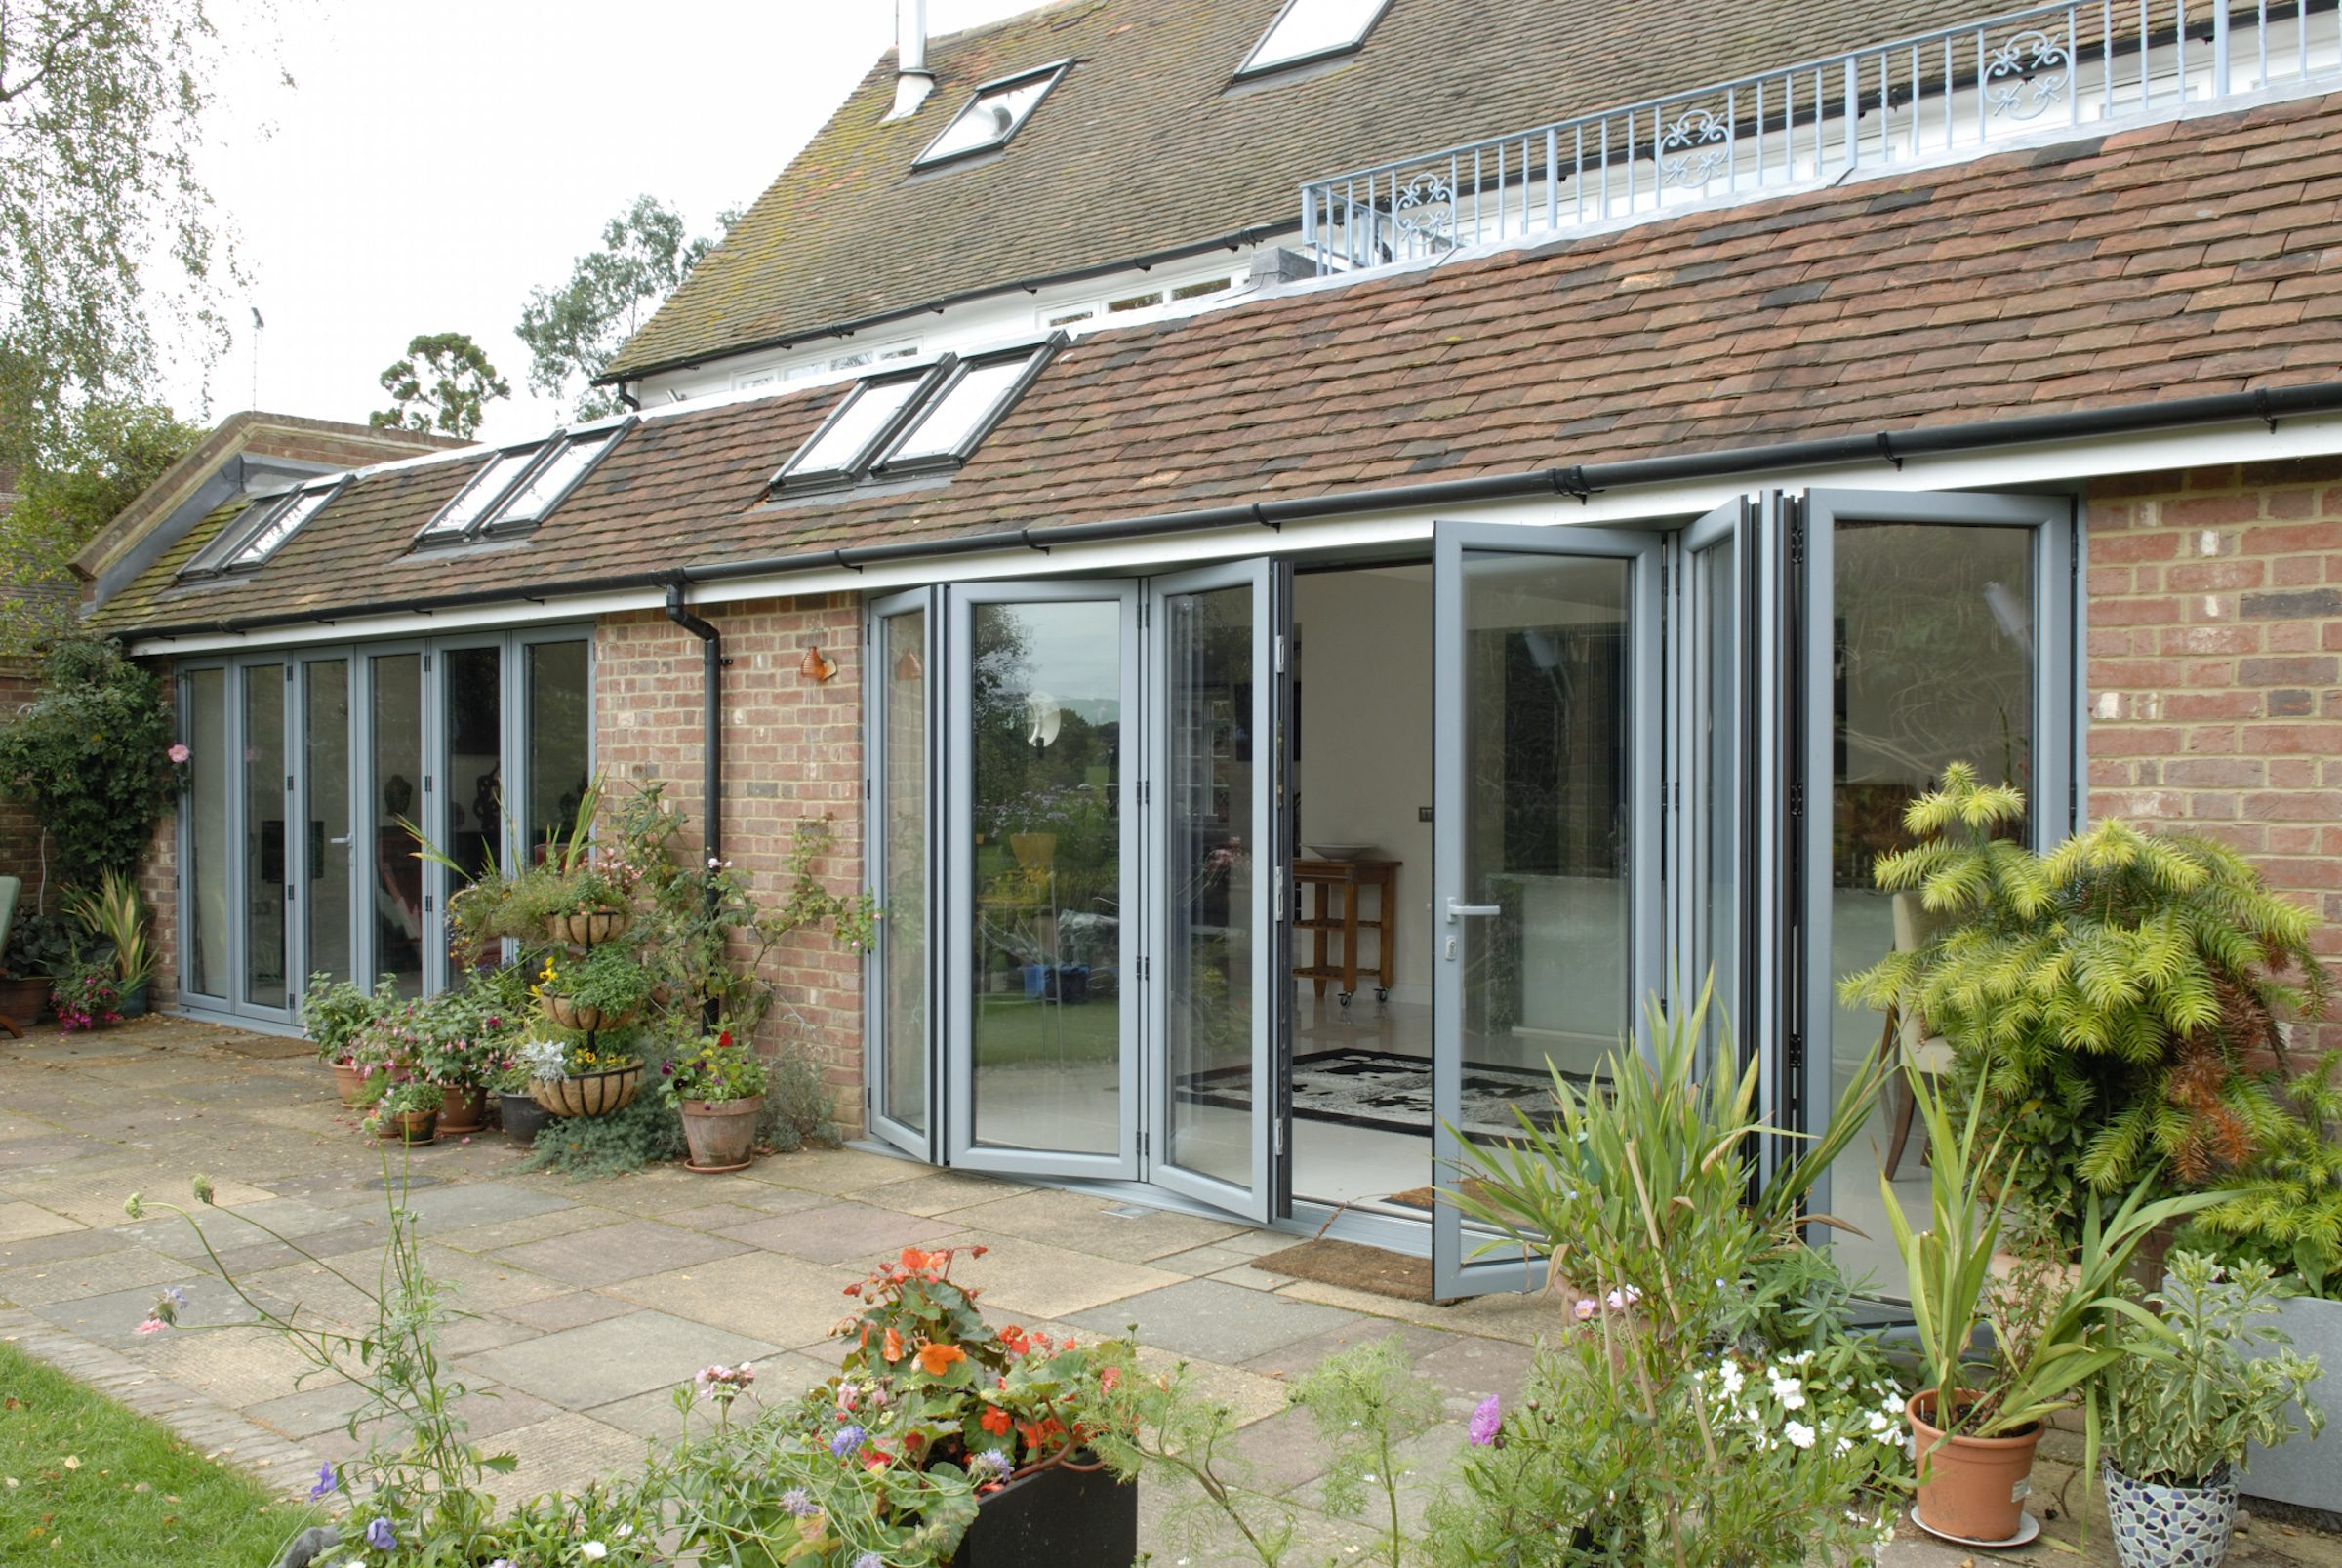 visofold 2000 bifold doors in a traditional house extension